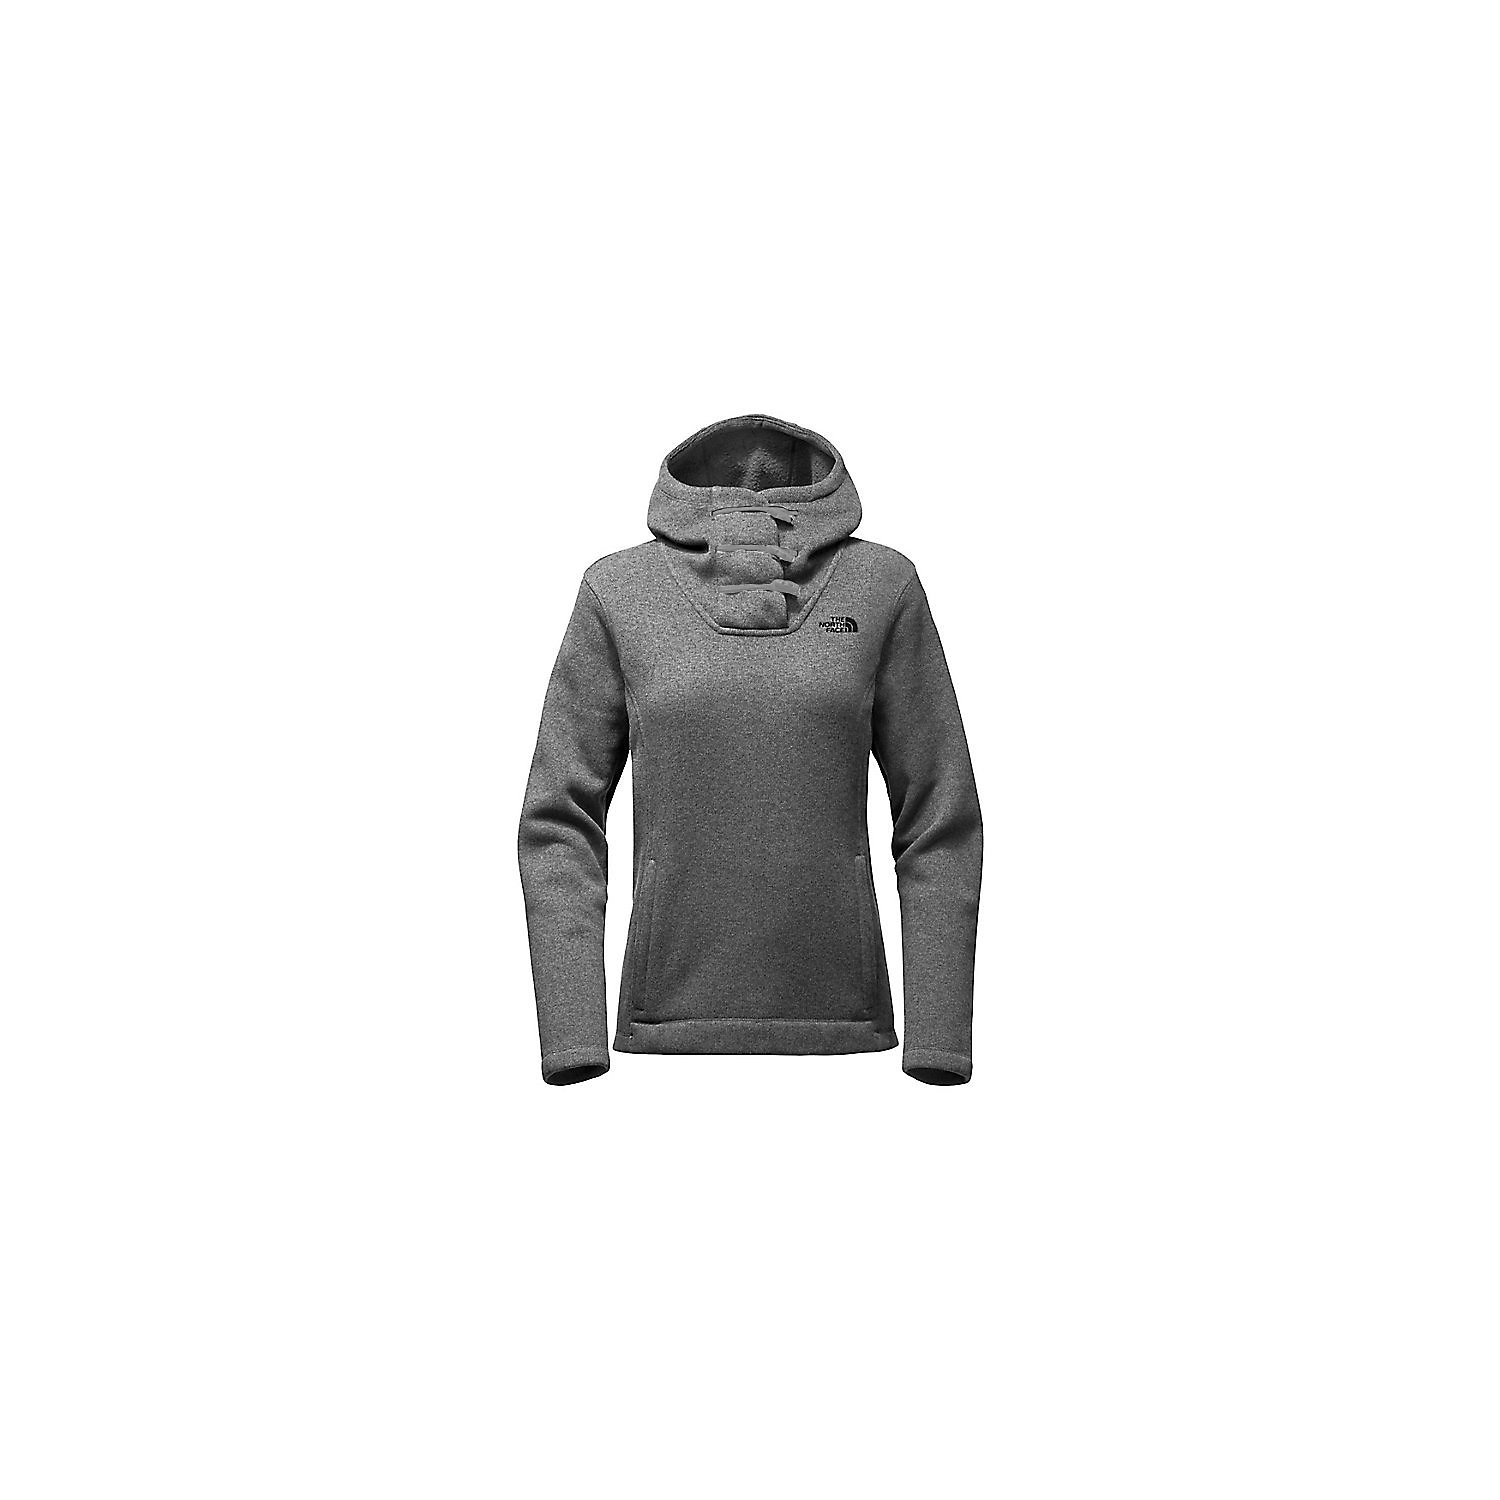 2df79c98c The North Face Women's Crescent Hooded Pullover